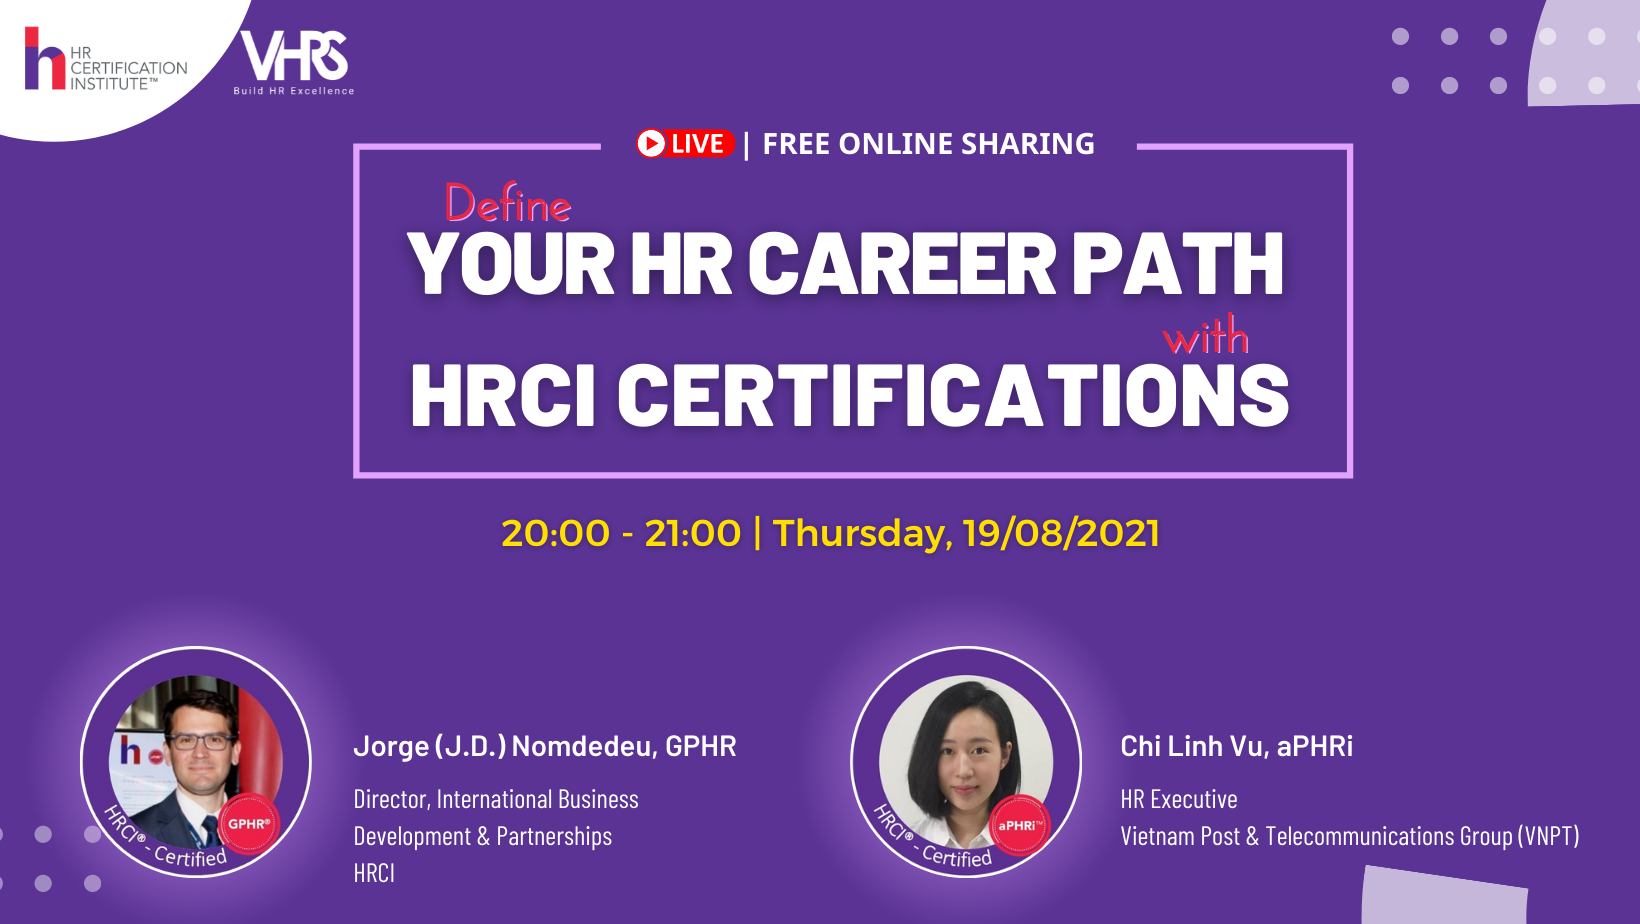 Live Webinar: Define Your HR Career Path with HRCI Certifications